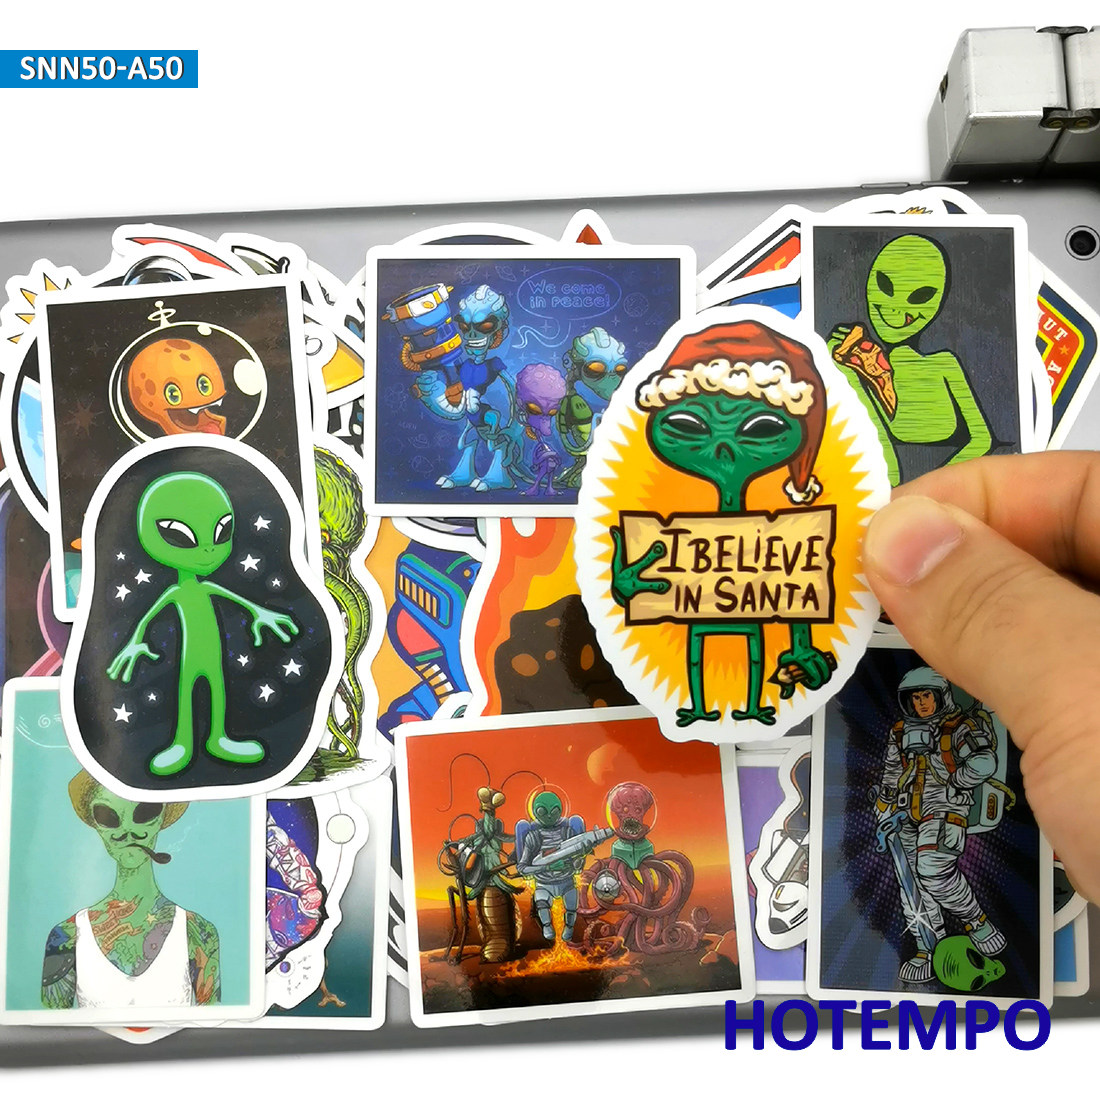 50pcs Astronaut Outer Space Alien <font><b>UFO</b></font> Rocket Fashion Style <font><b>Stickers</b></font> Toys for Mobile Phone Laptop Luggage Skateboard Car <font><b>Stickers</b></font> image